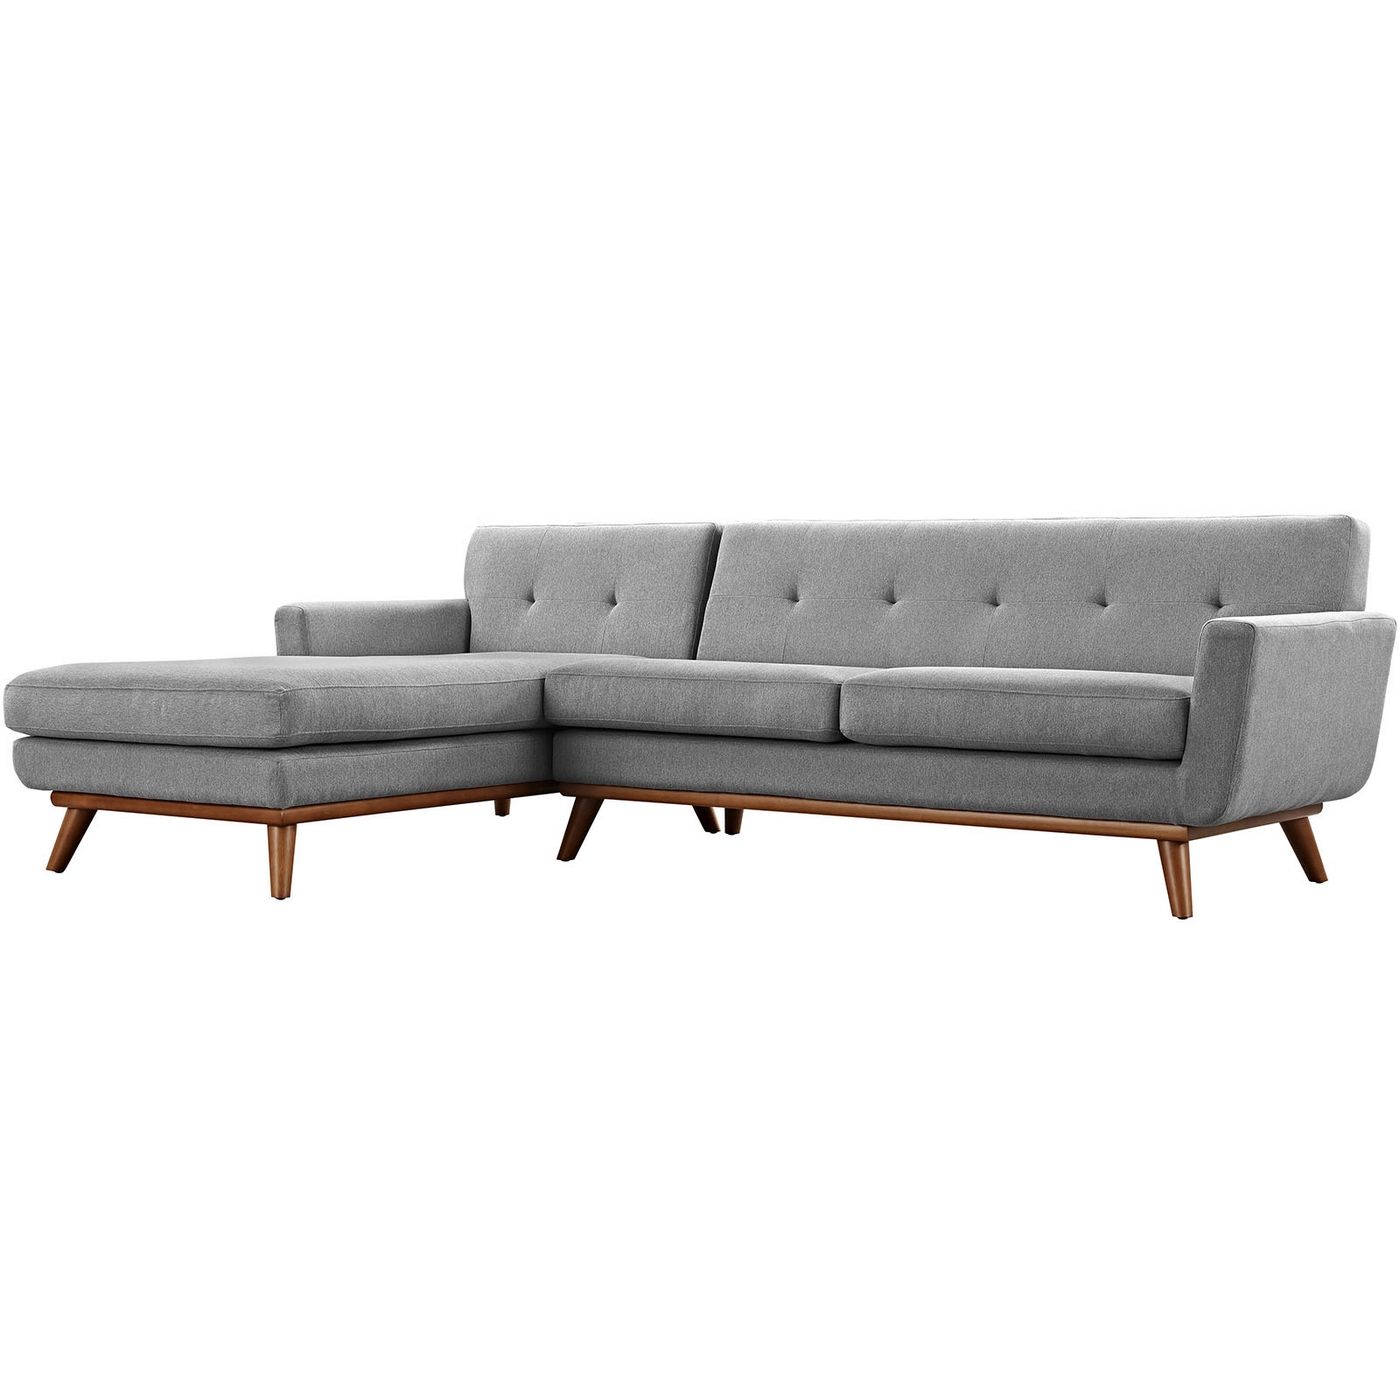 Recent Alani Mid Century Modern Sectional Sofas With Chaise Pertaining To Mid Century Modern Engage Right Facing Chaise Sectional (View 24 of 25)